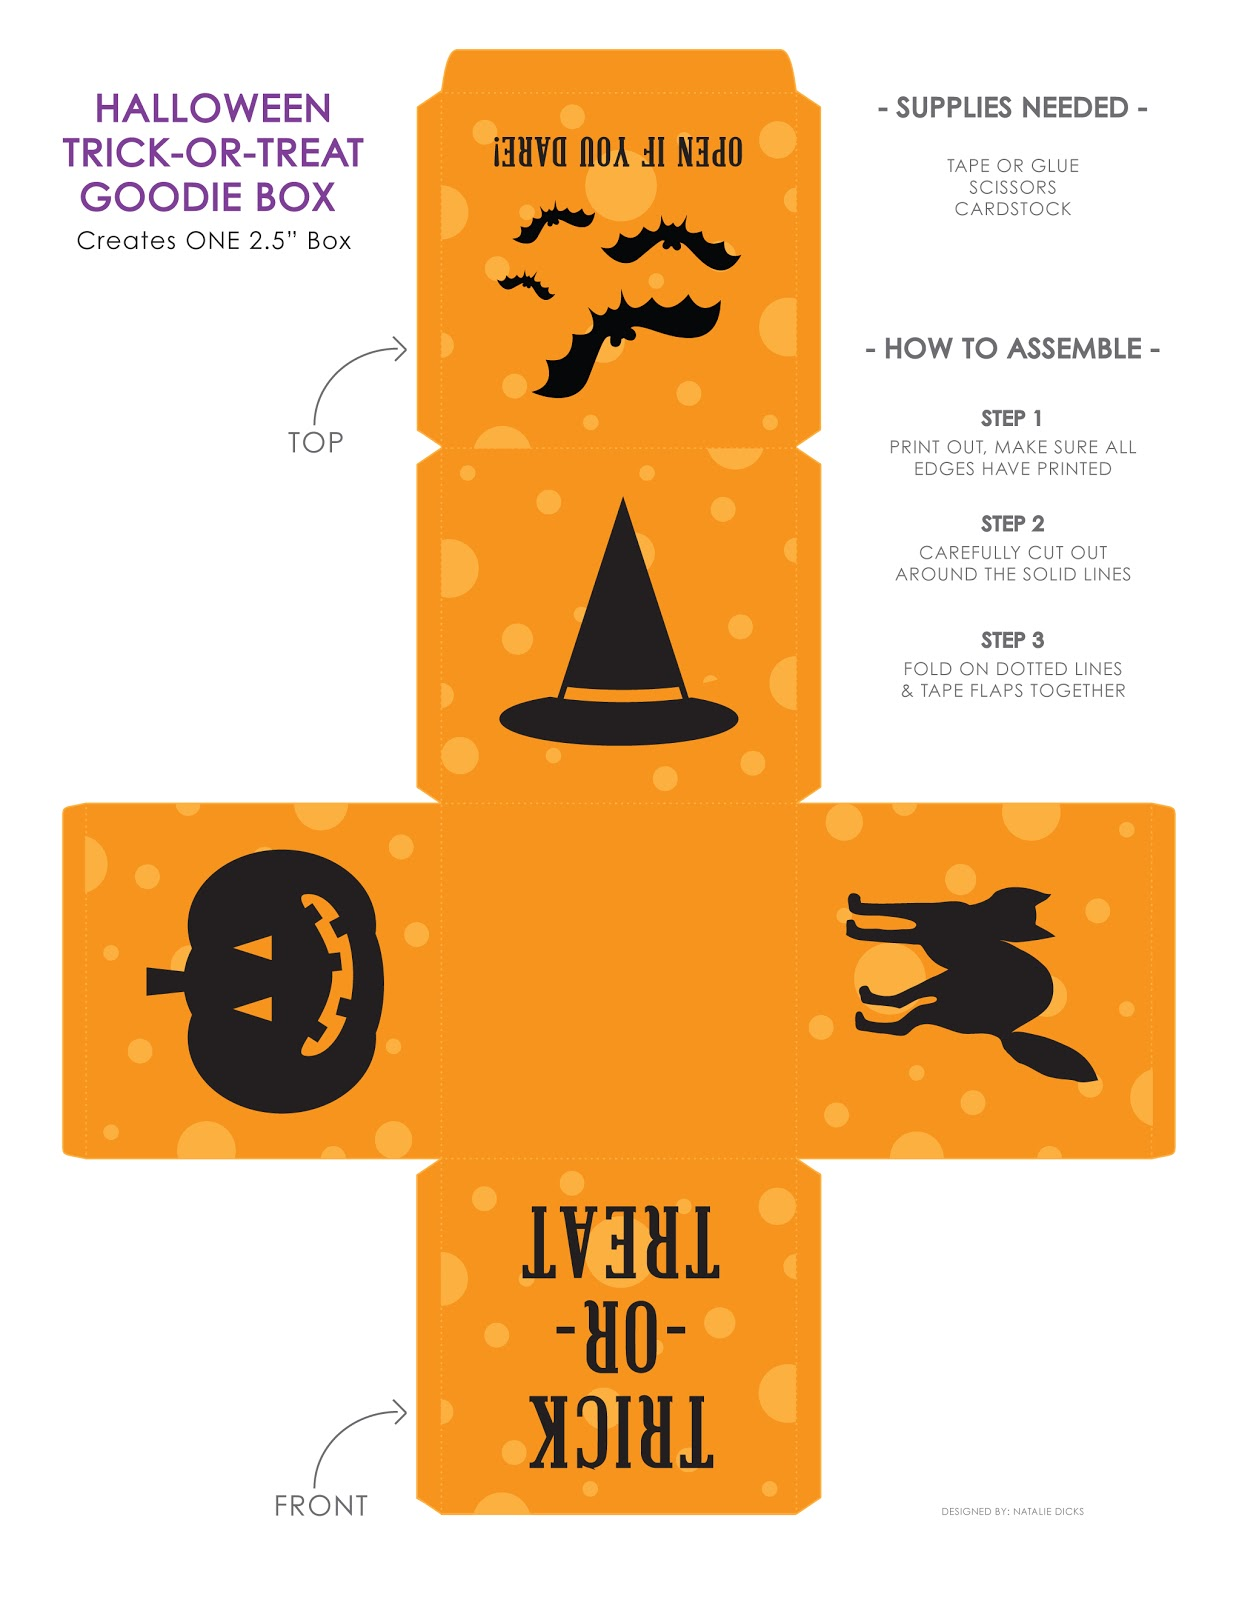 Halloween Goobox